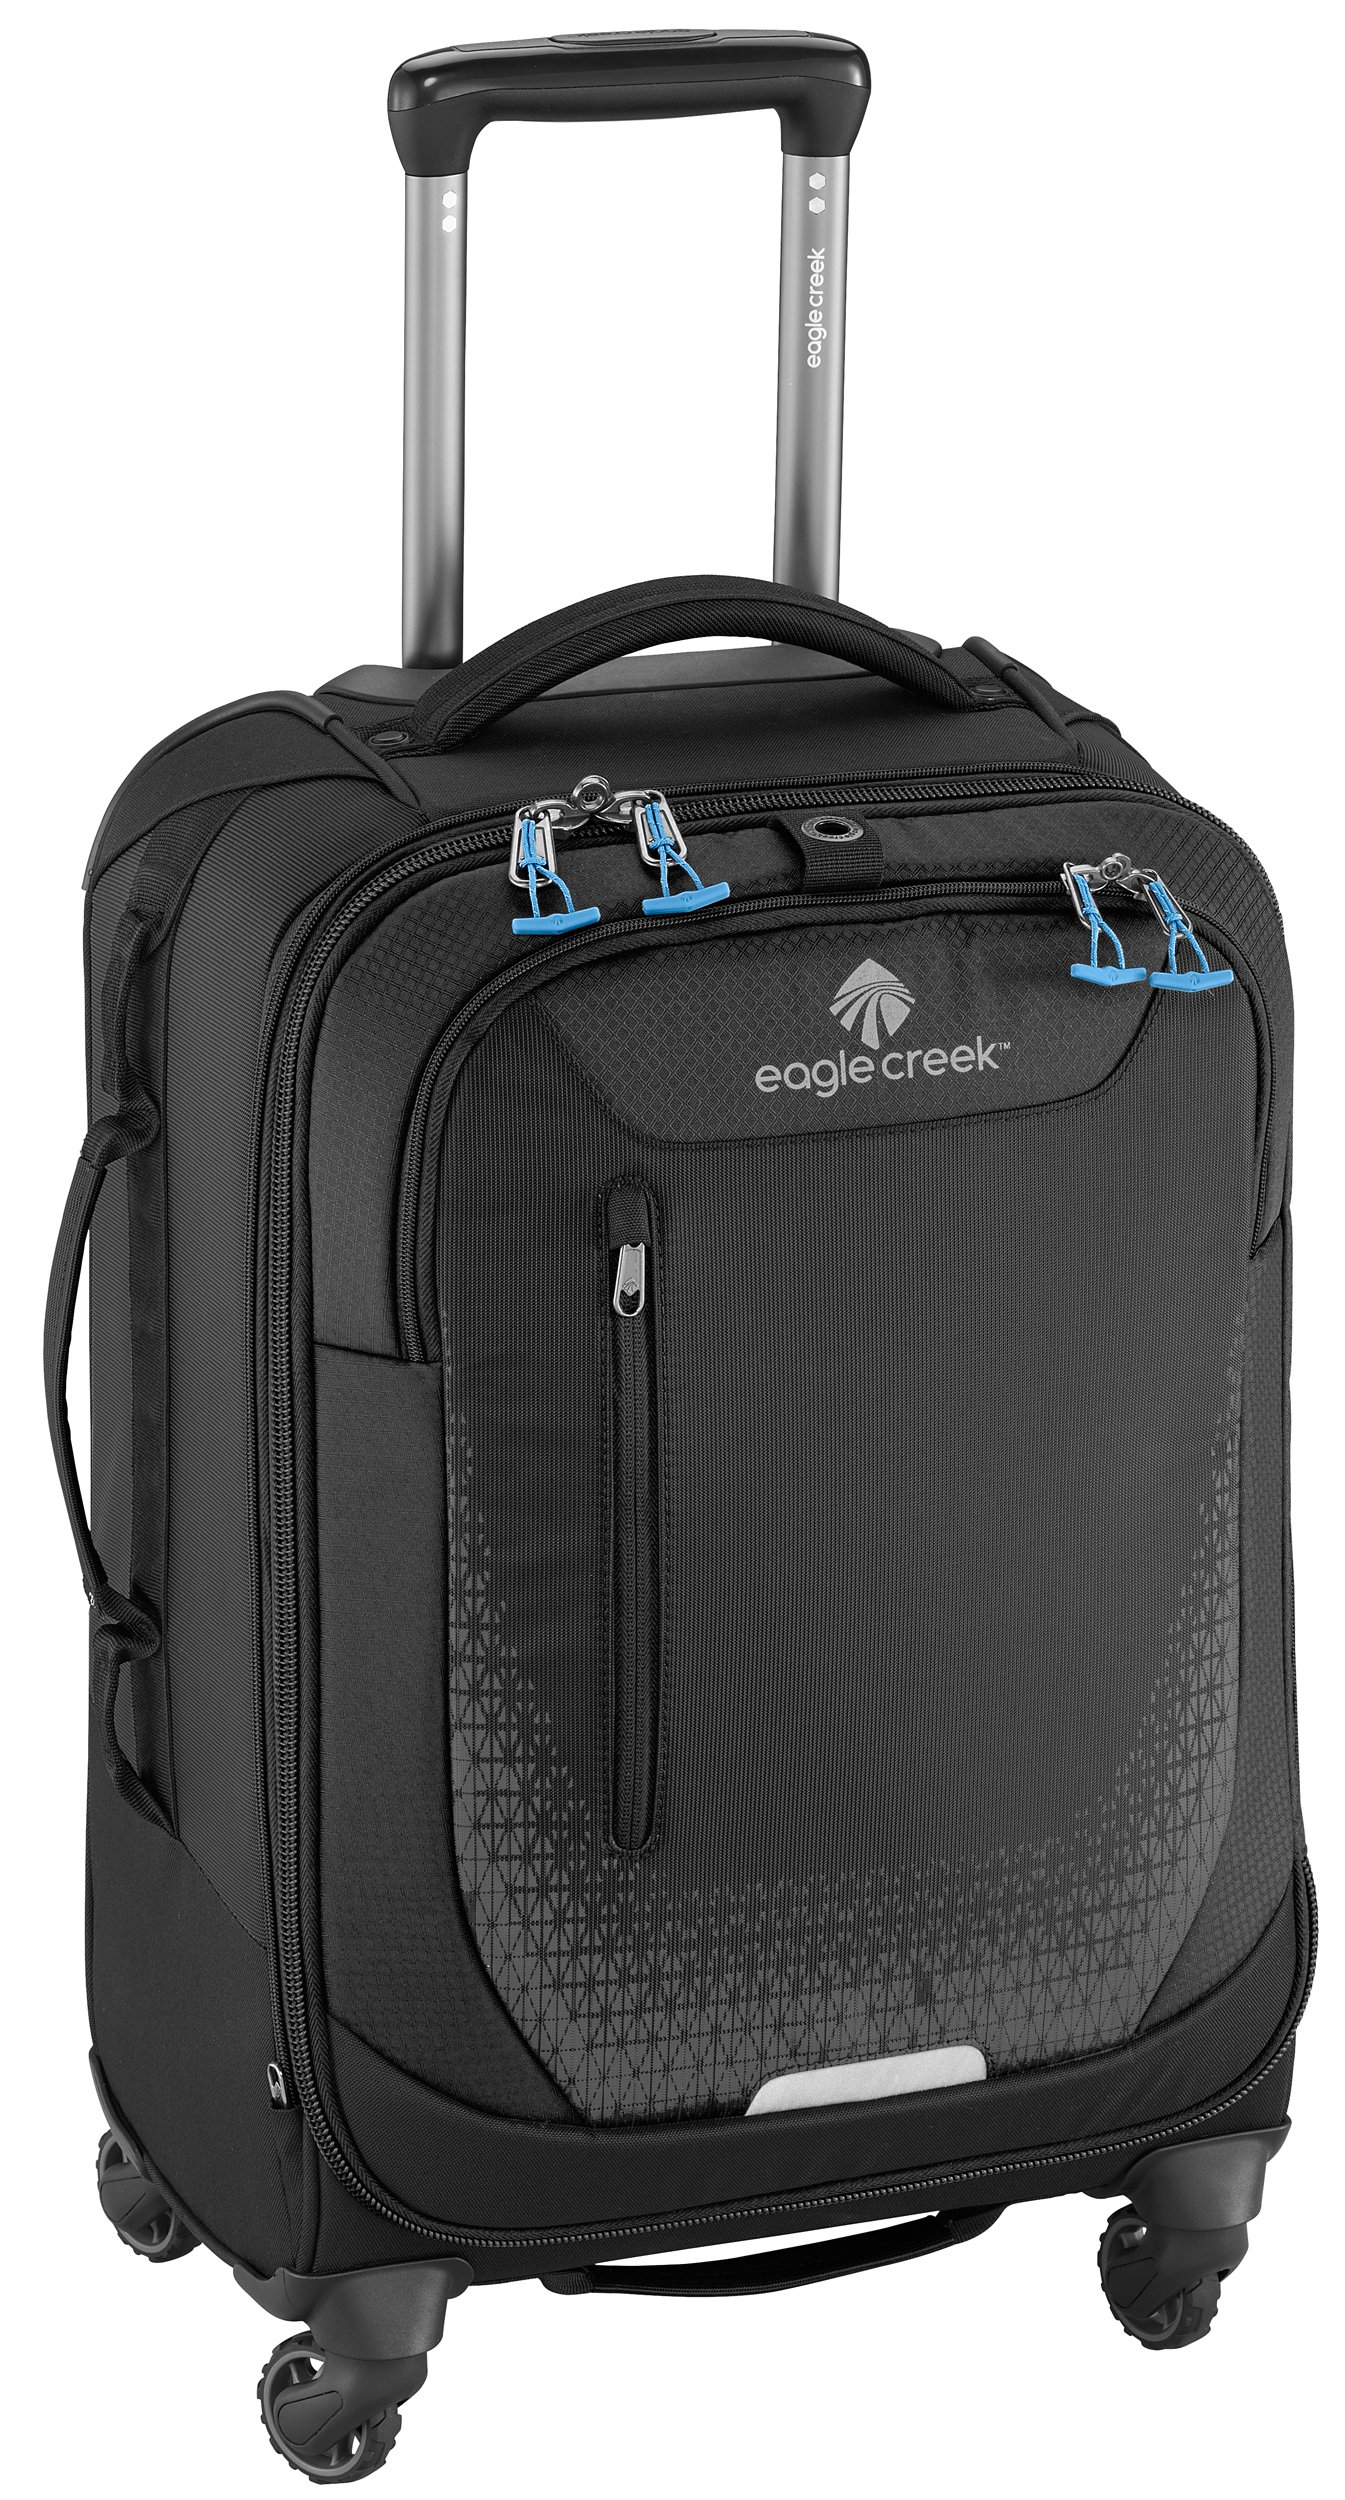 Eagle Creek Expanse AWD Carry-On Bag, 22-Inch, Black by Eagle Creek